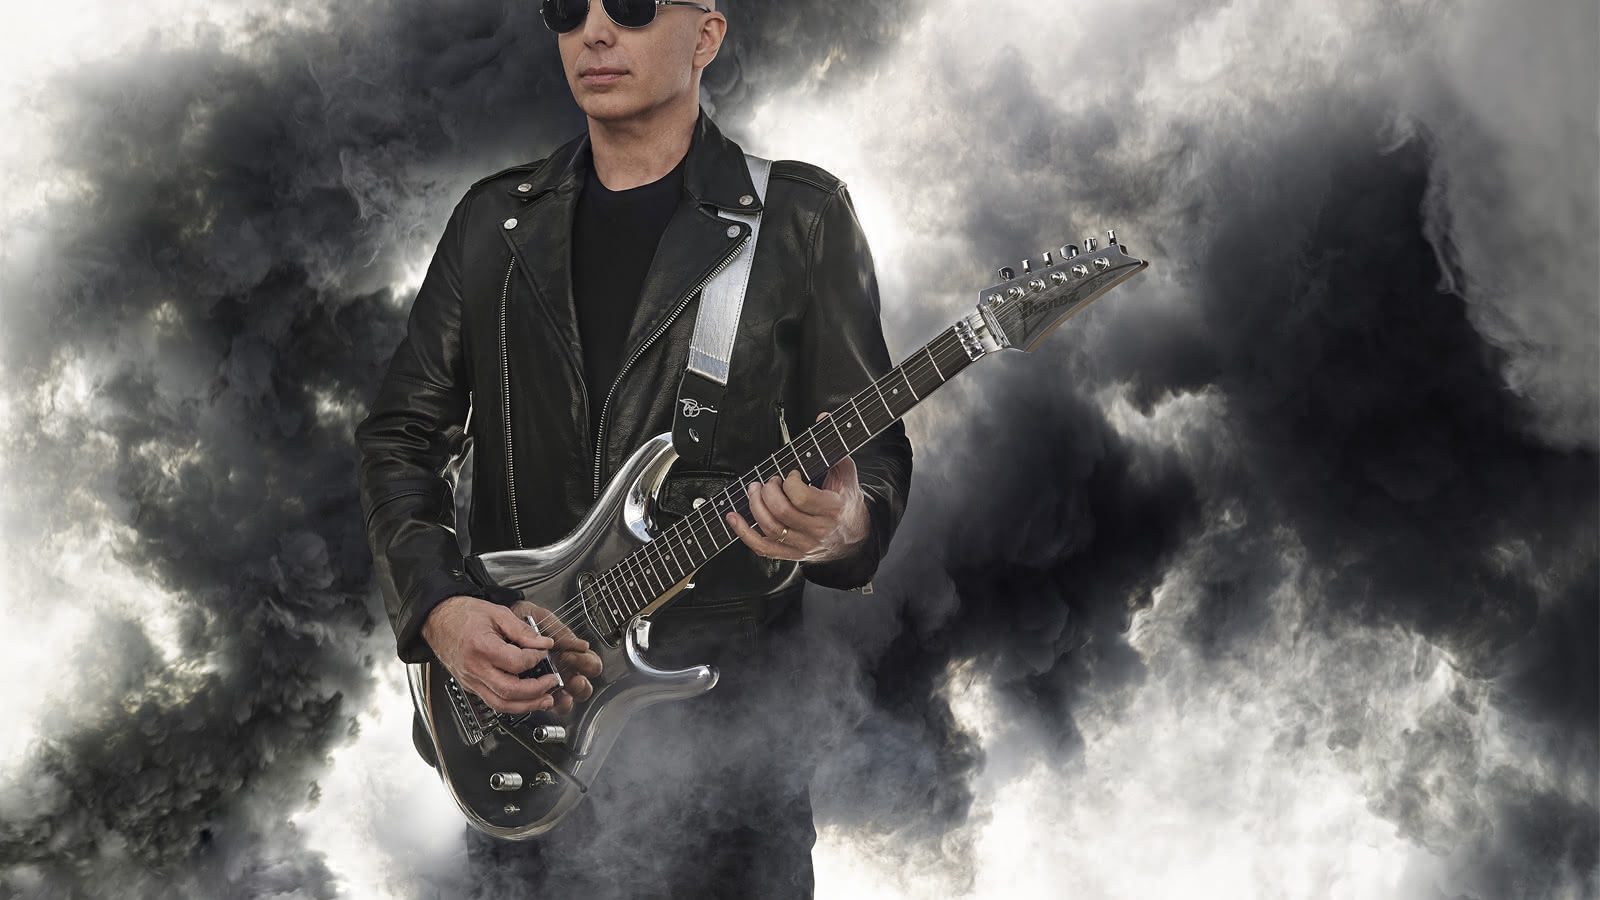 La Coopérative de Mai : Joe Satriani (report)